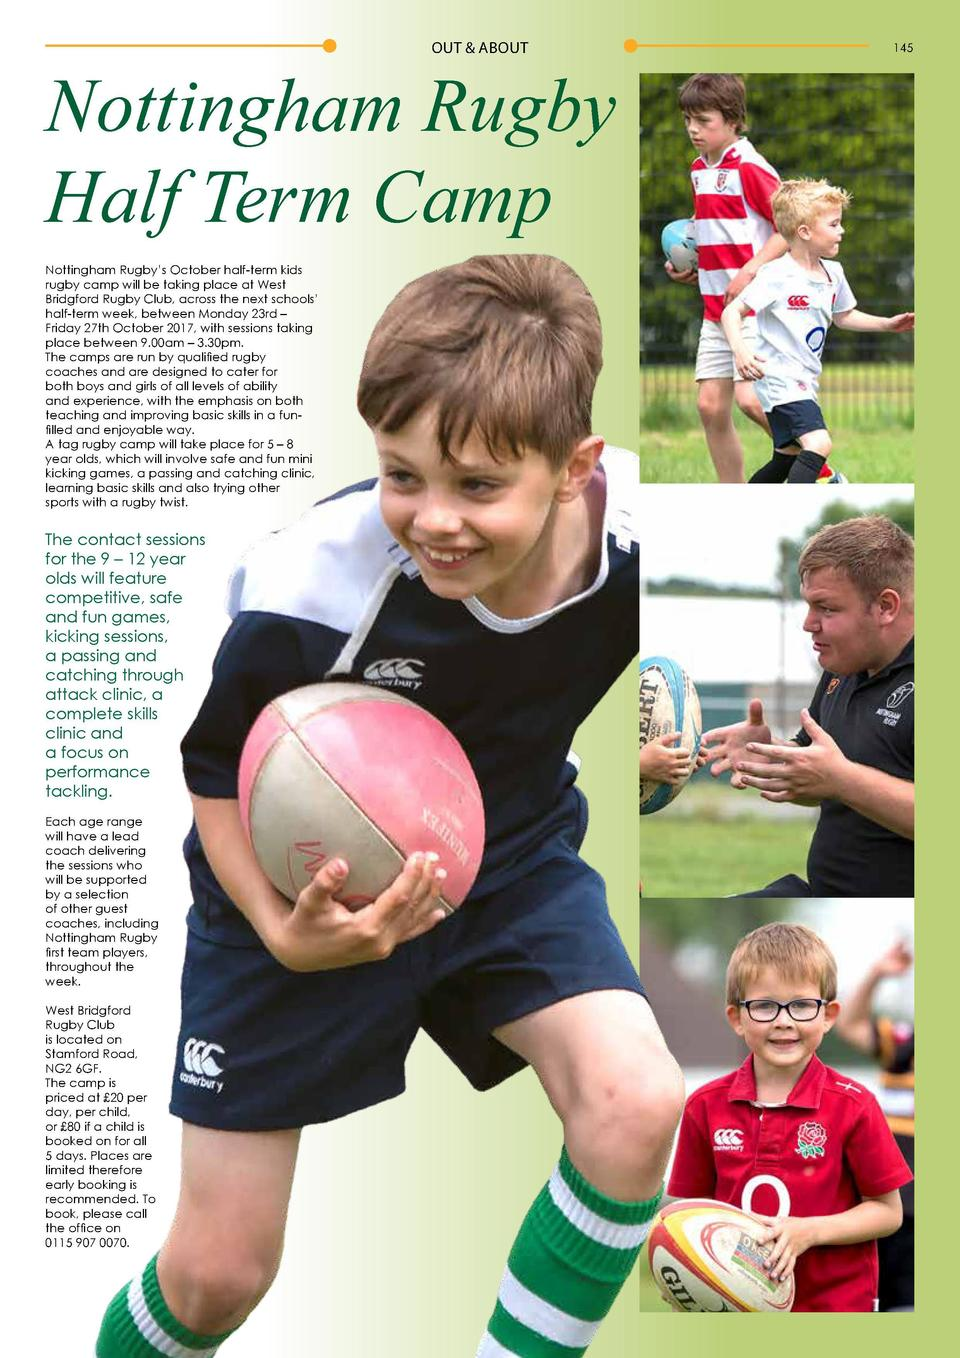 144  OUT   ABOUT  OUT   ABOUT  Timelines  Nottingham Rugby Half Term Camp Nottingham Rugby   s October half-term kids rugb...